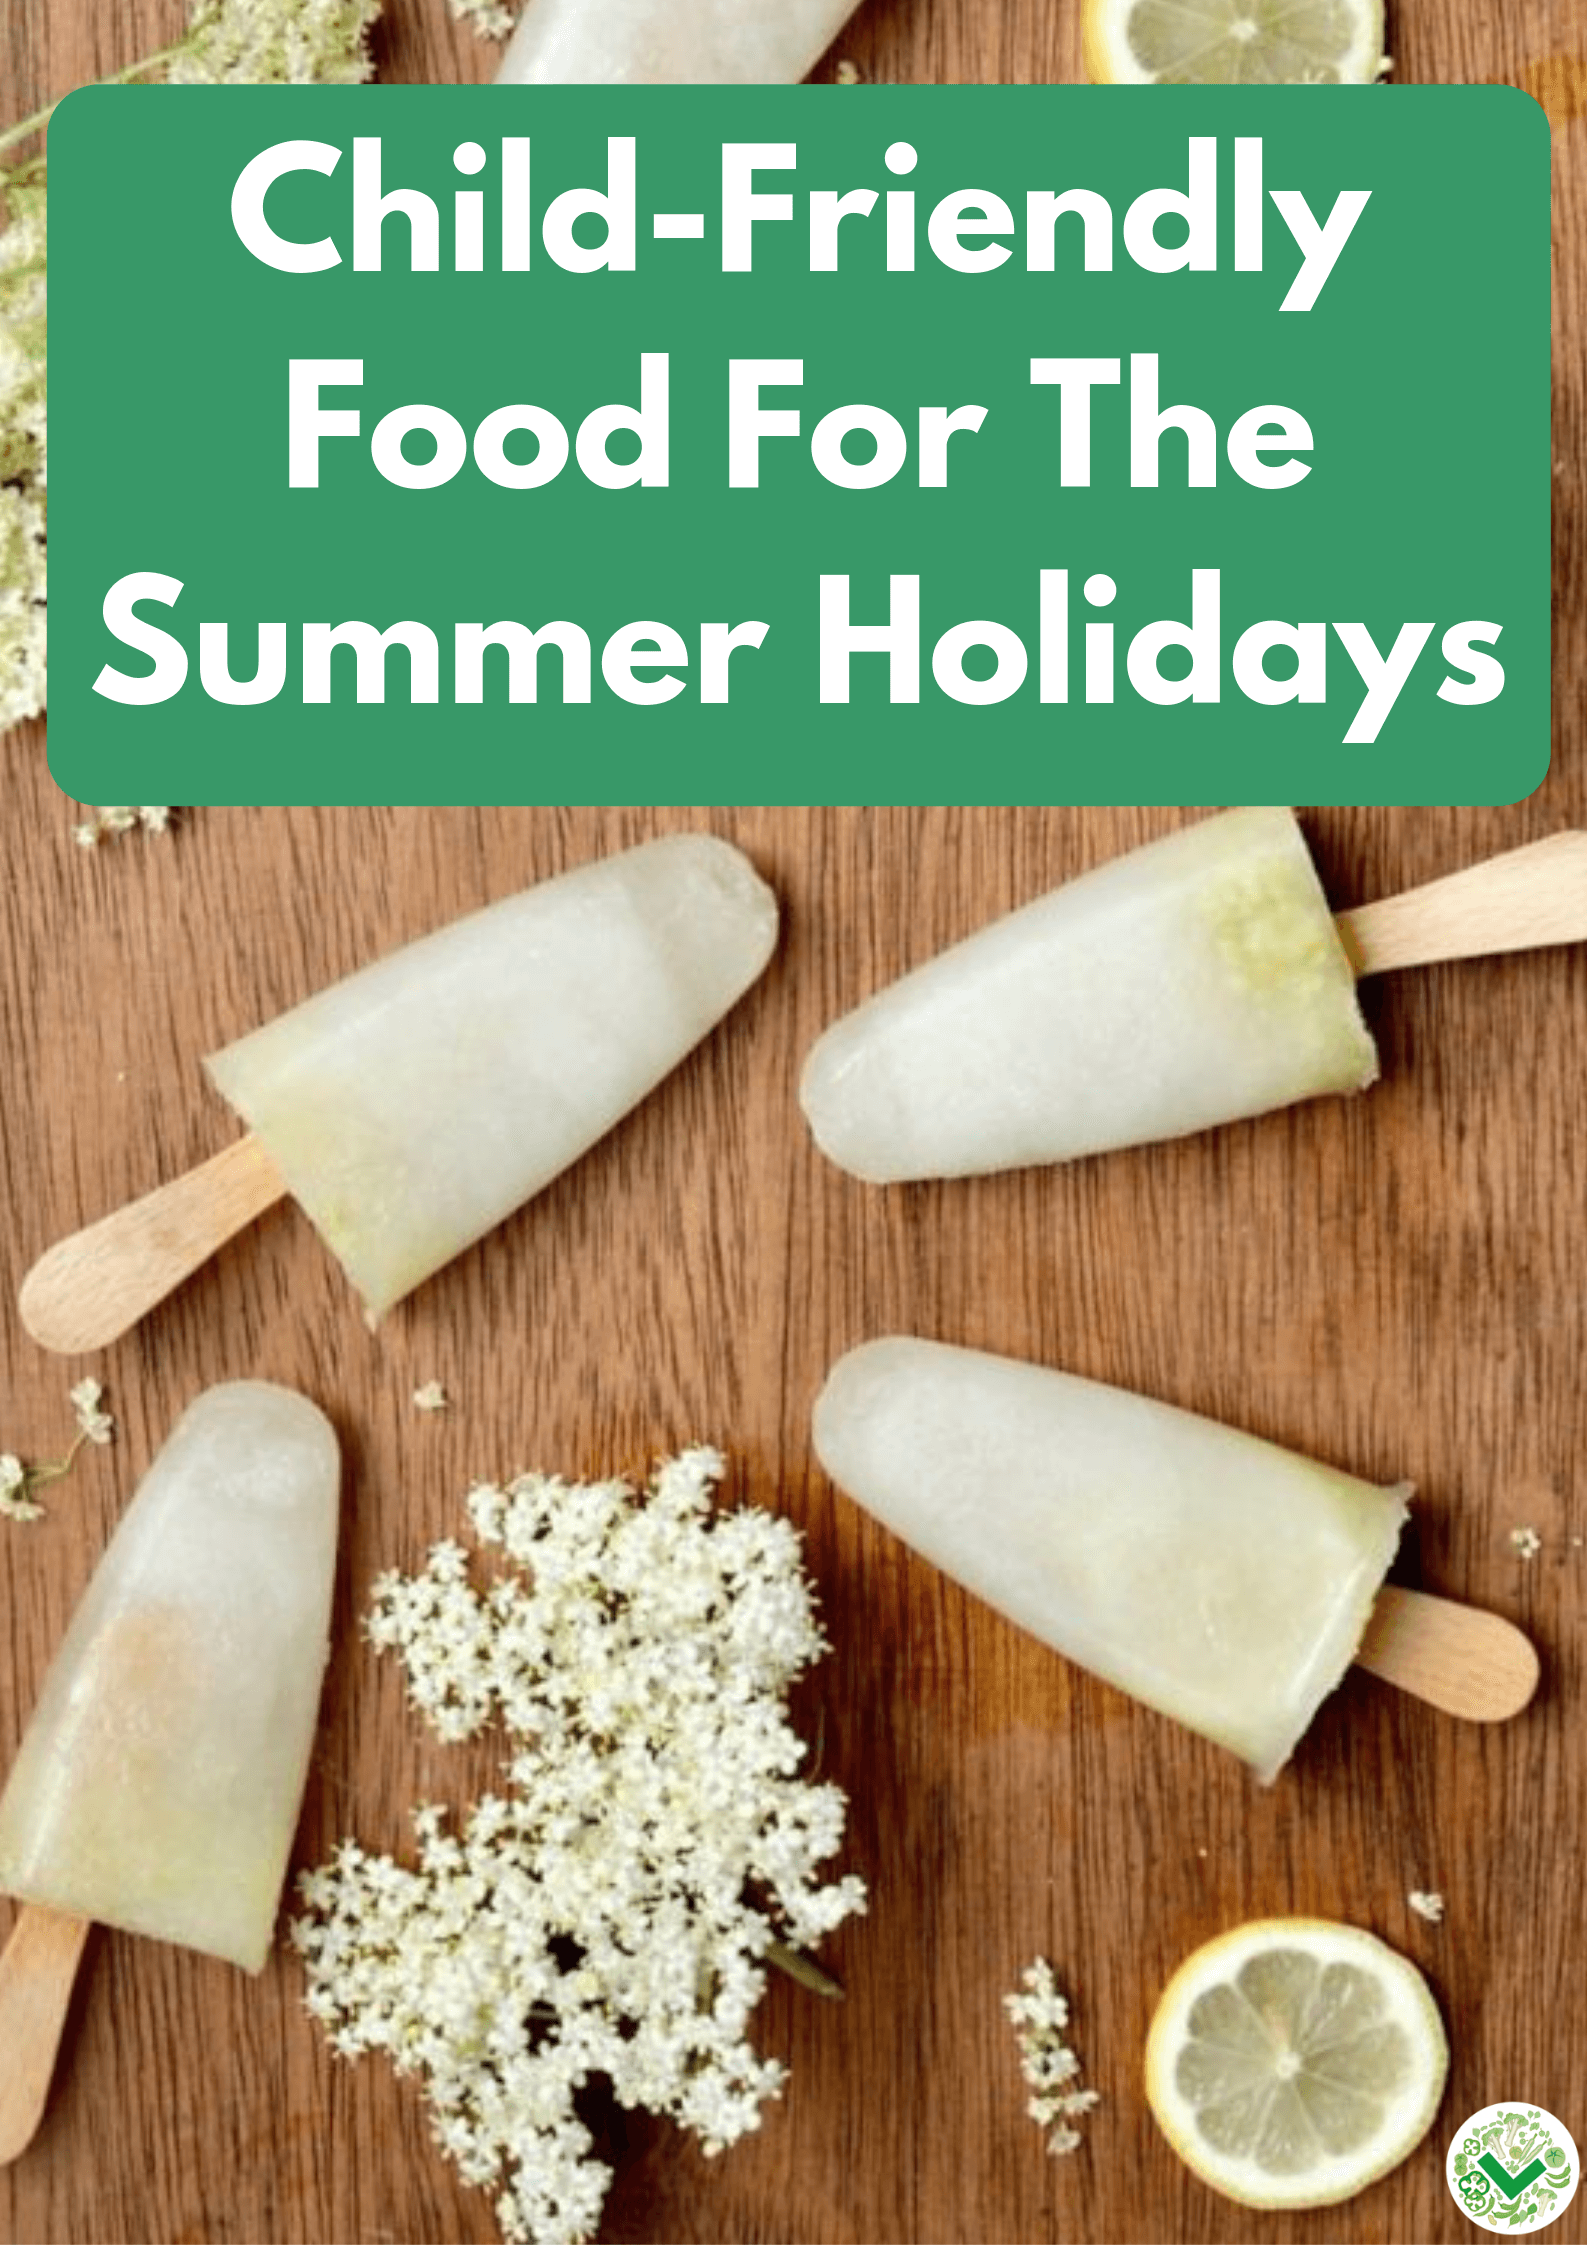 Child-Friendly-vegan-Food-For-The-Summer-Holidays